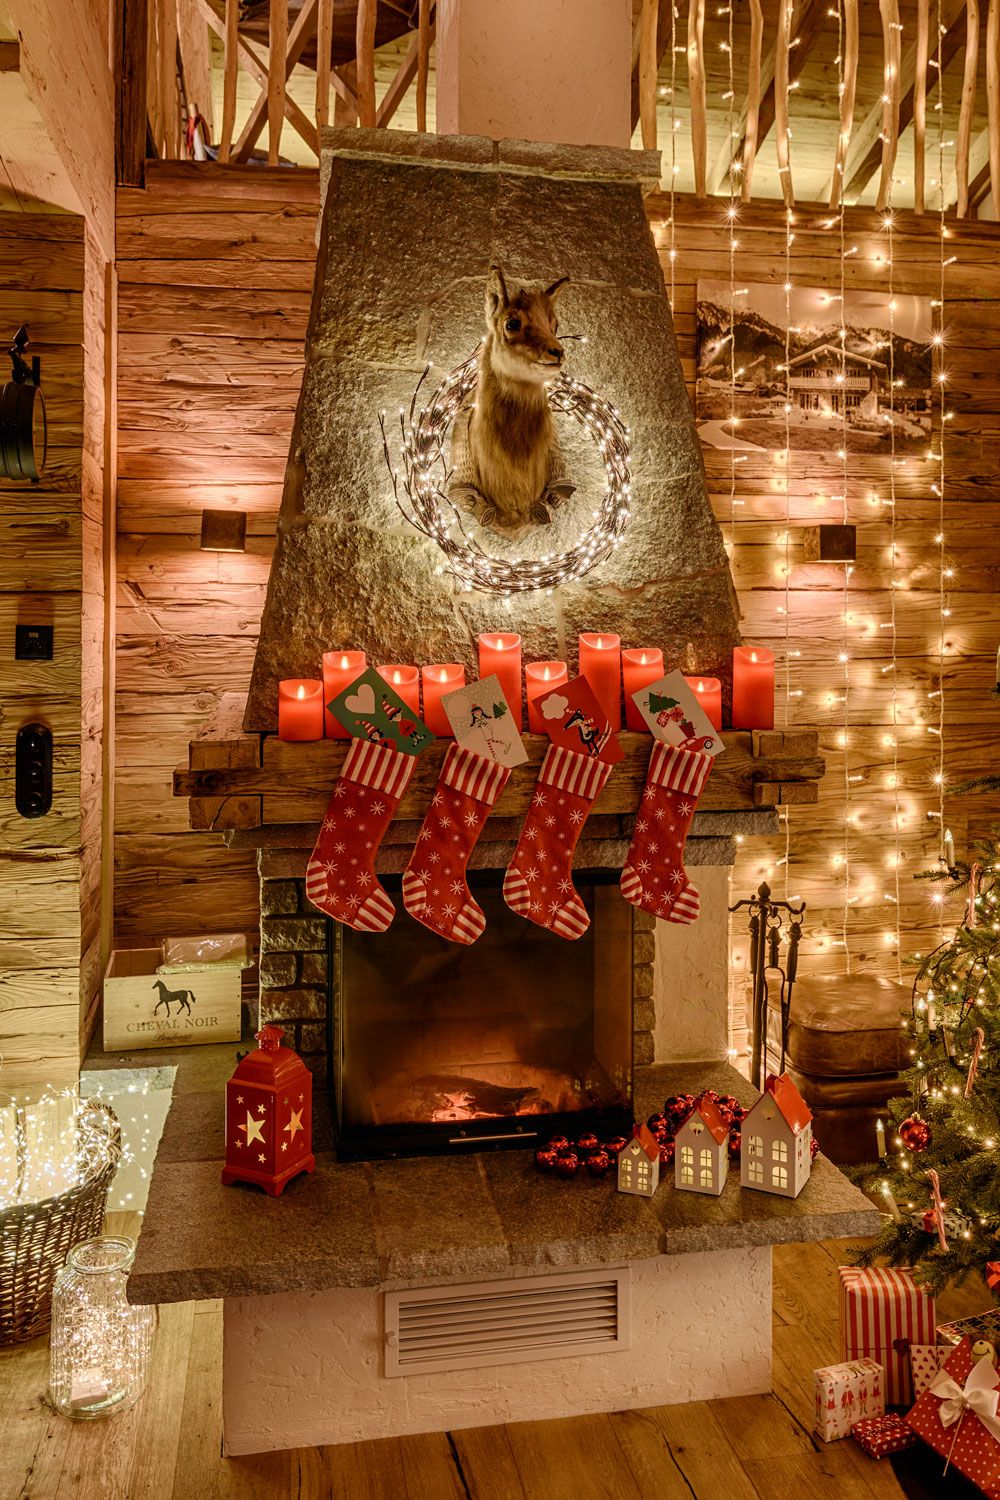 Decorare Caminetto A Natale Addobbi Natalizi 2019 Per Camino Luci Di Natale Home Decor